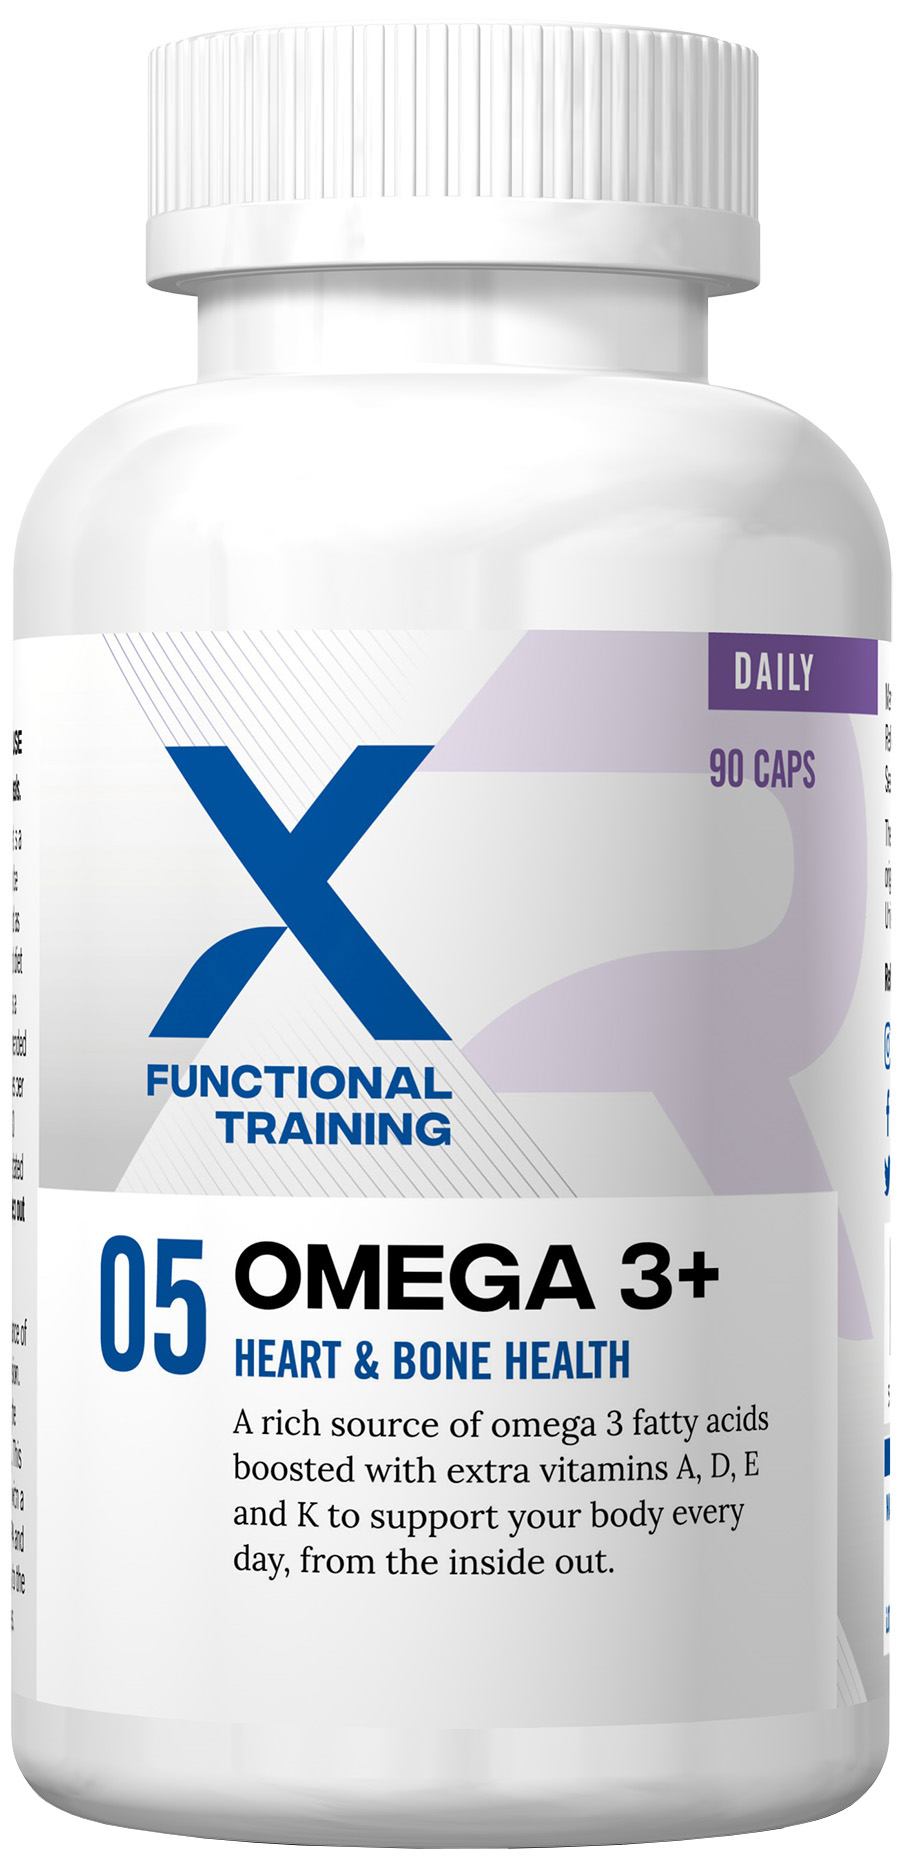 Reflex XFT Omega 3+ (90 Capsules) | Misc. Nutrition